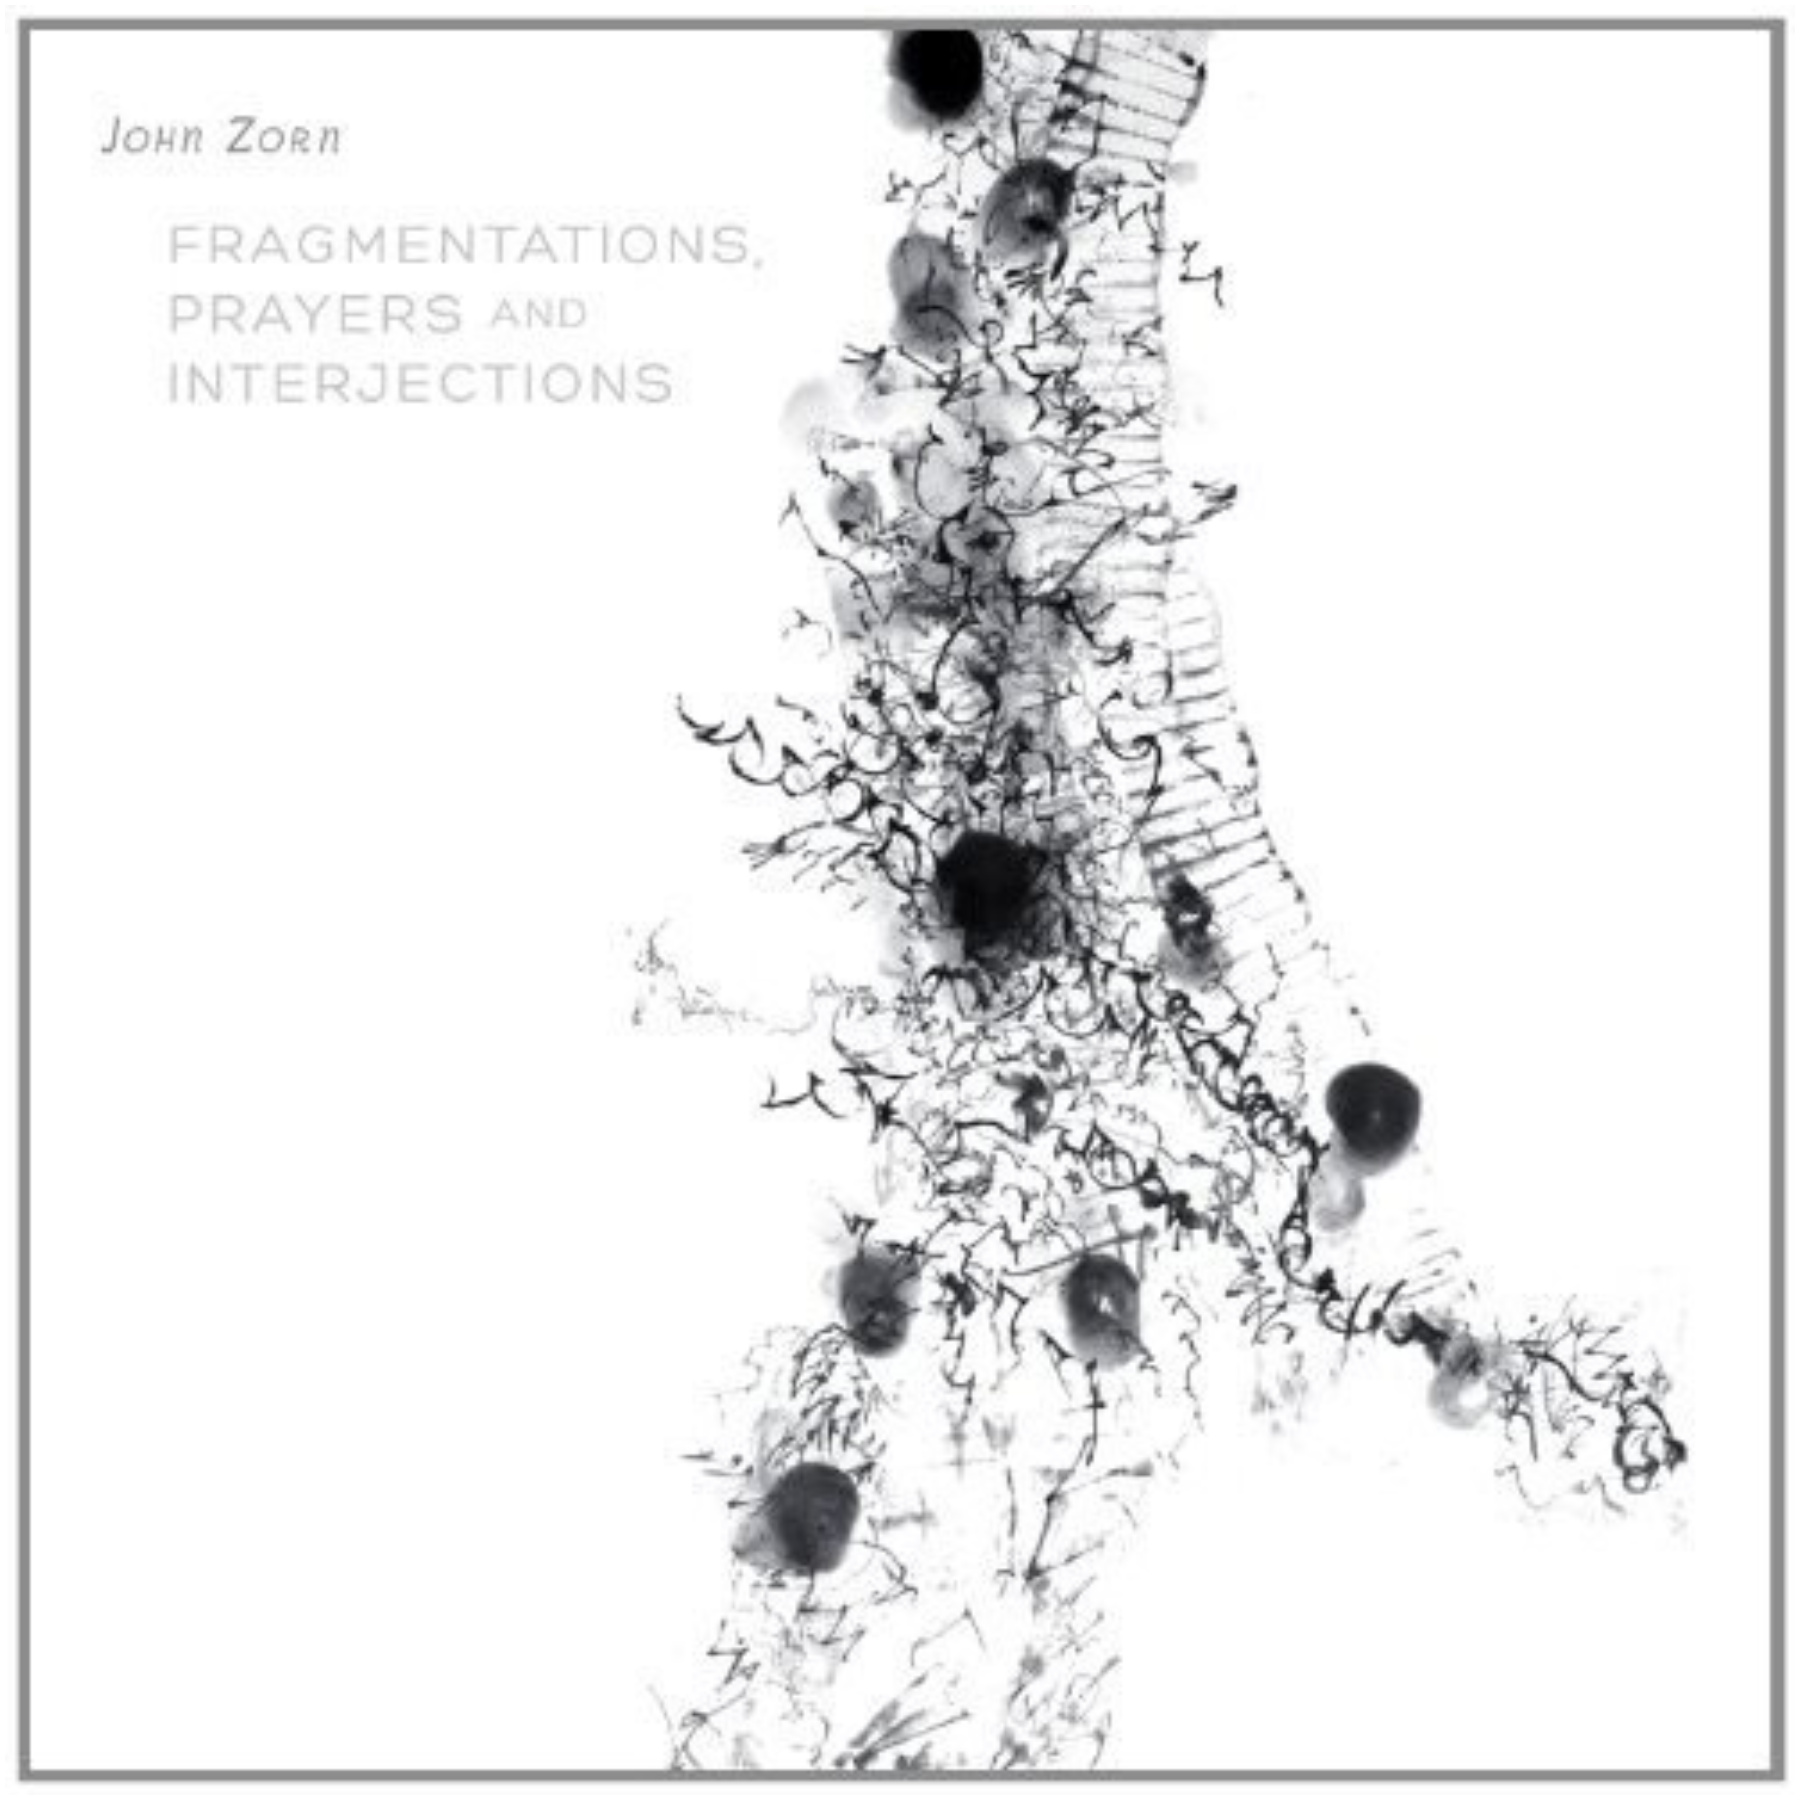 JOHN ZORN - Fragmentations, Prayers And Interjections cover